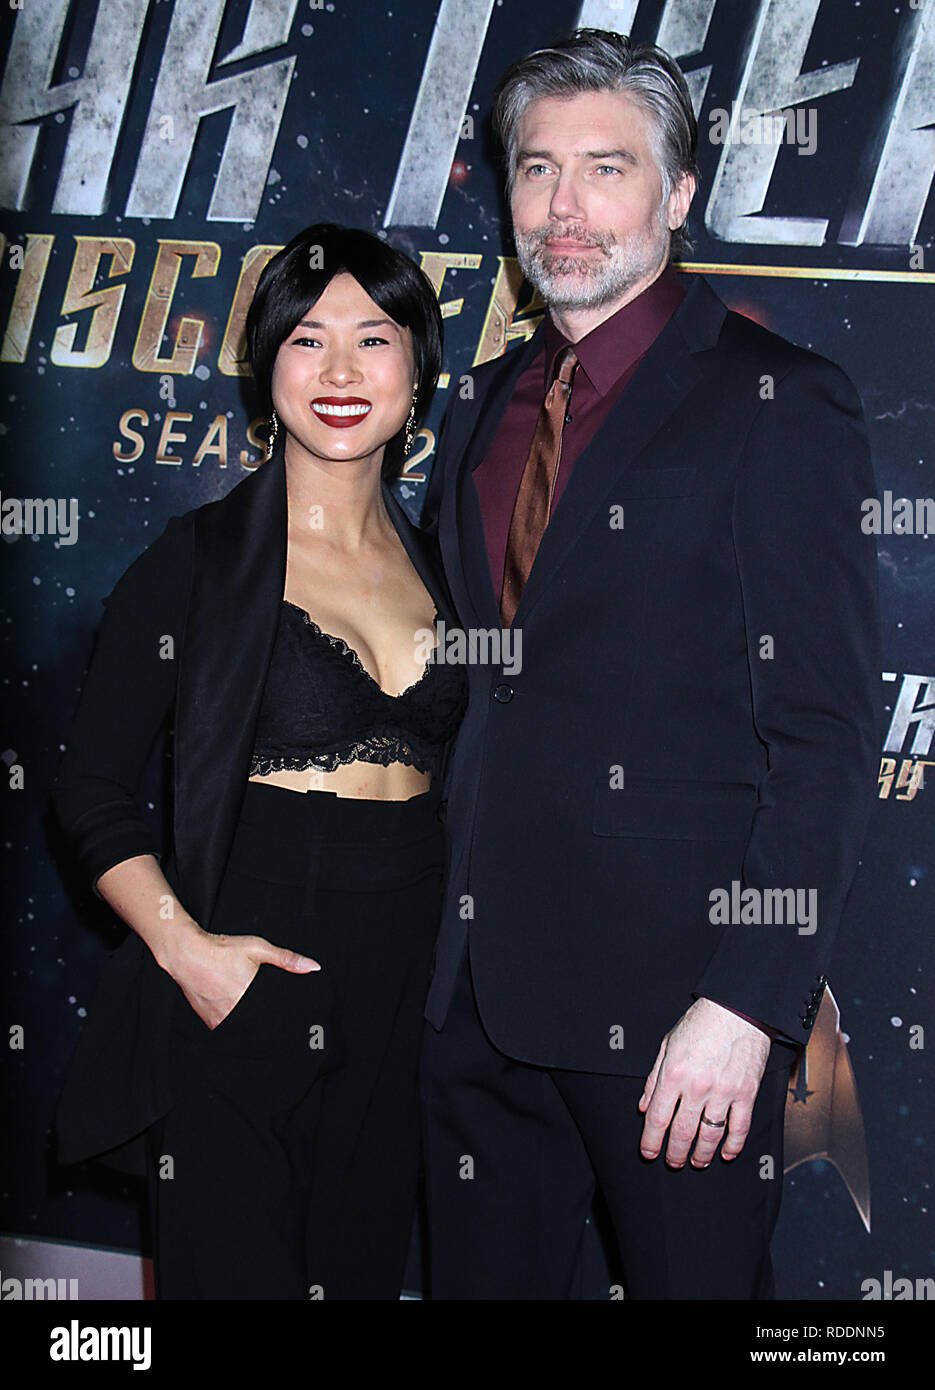 Darah Trang High Resolution Stock Photography And Images Alamy Pham doan trang (born 1978 in hanoi) is a vietnamese author, blogger, journalist, and democracy activist. https www alamy com january 17 2019 darah trang anson mount attend cbs all access presents star trek discovery season 2 premiere at conrad in new york january 17 2019 credit rwmediapunch image232027745 html